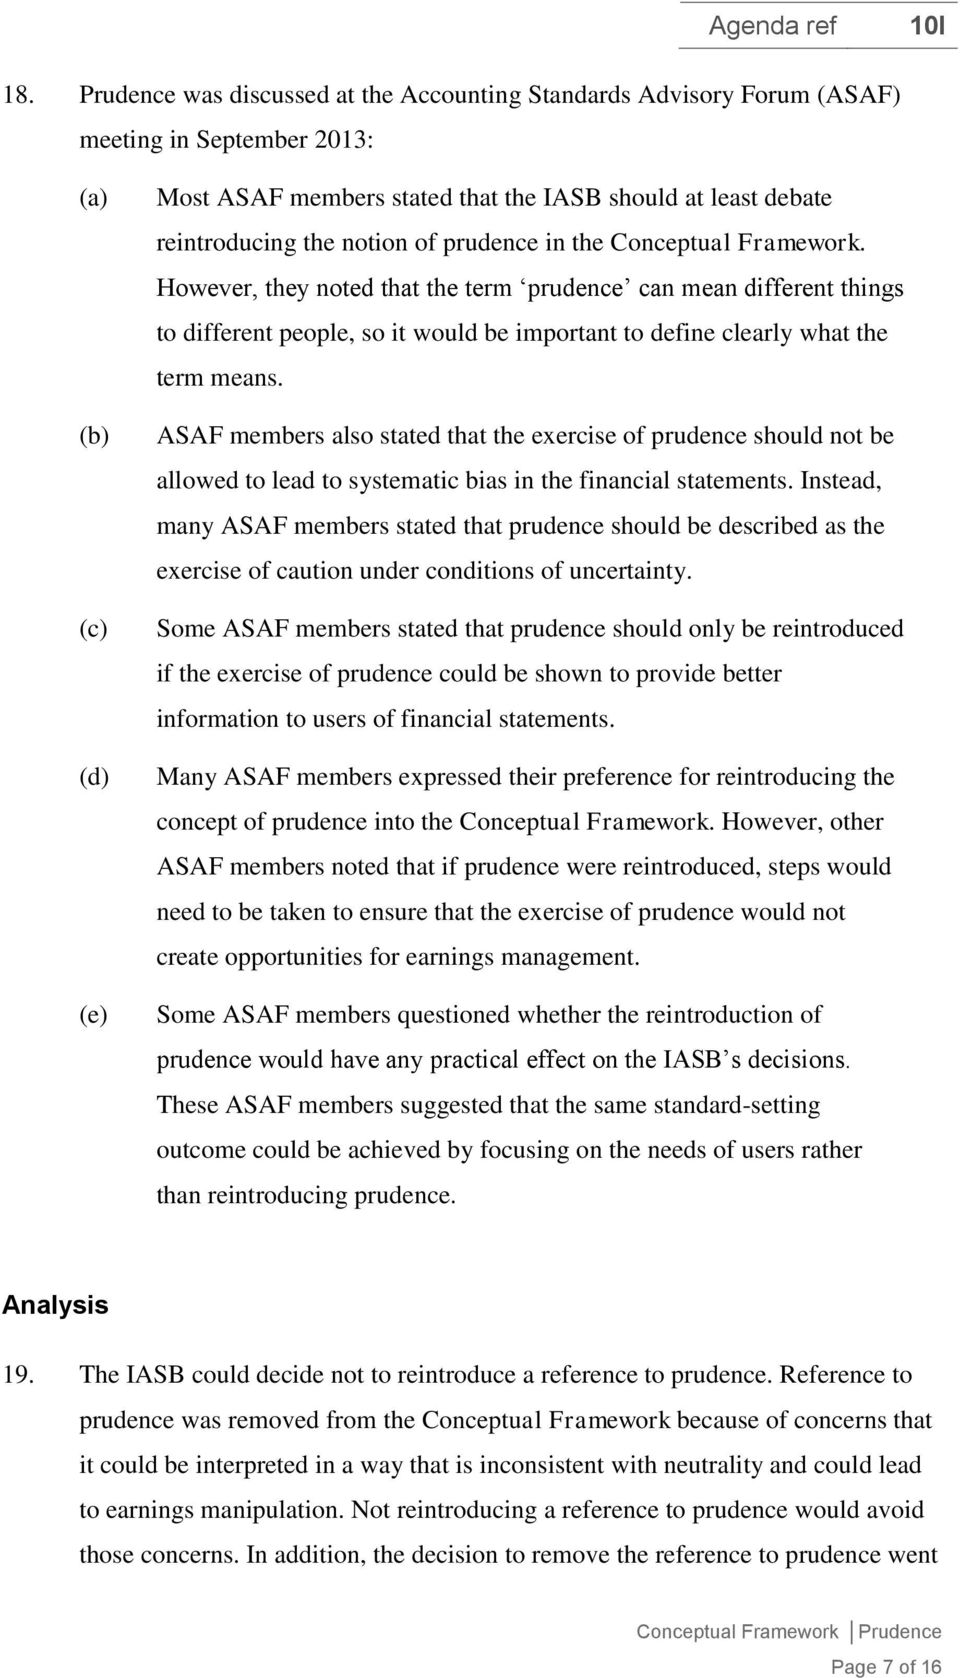 ASAF members also stated that the exercise of prudence should not be allowed to lead to systematic bias in the financial statements.